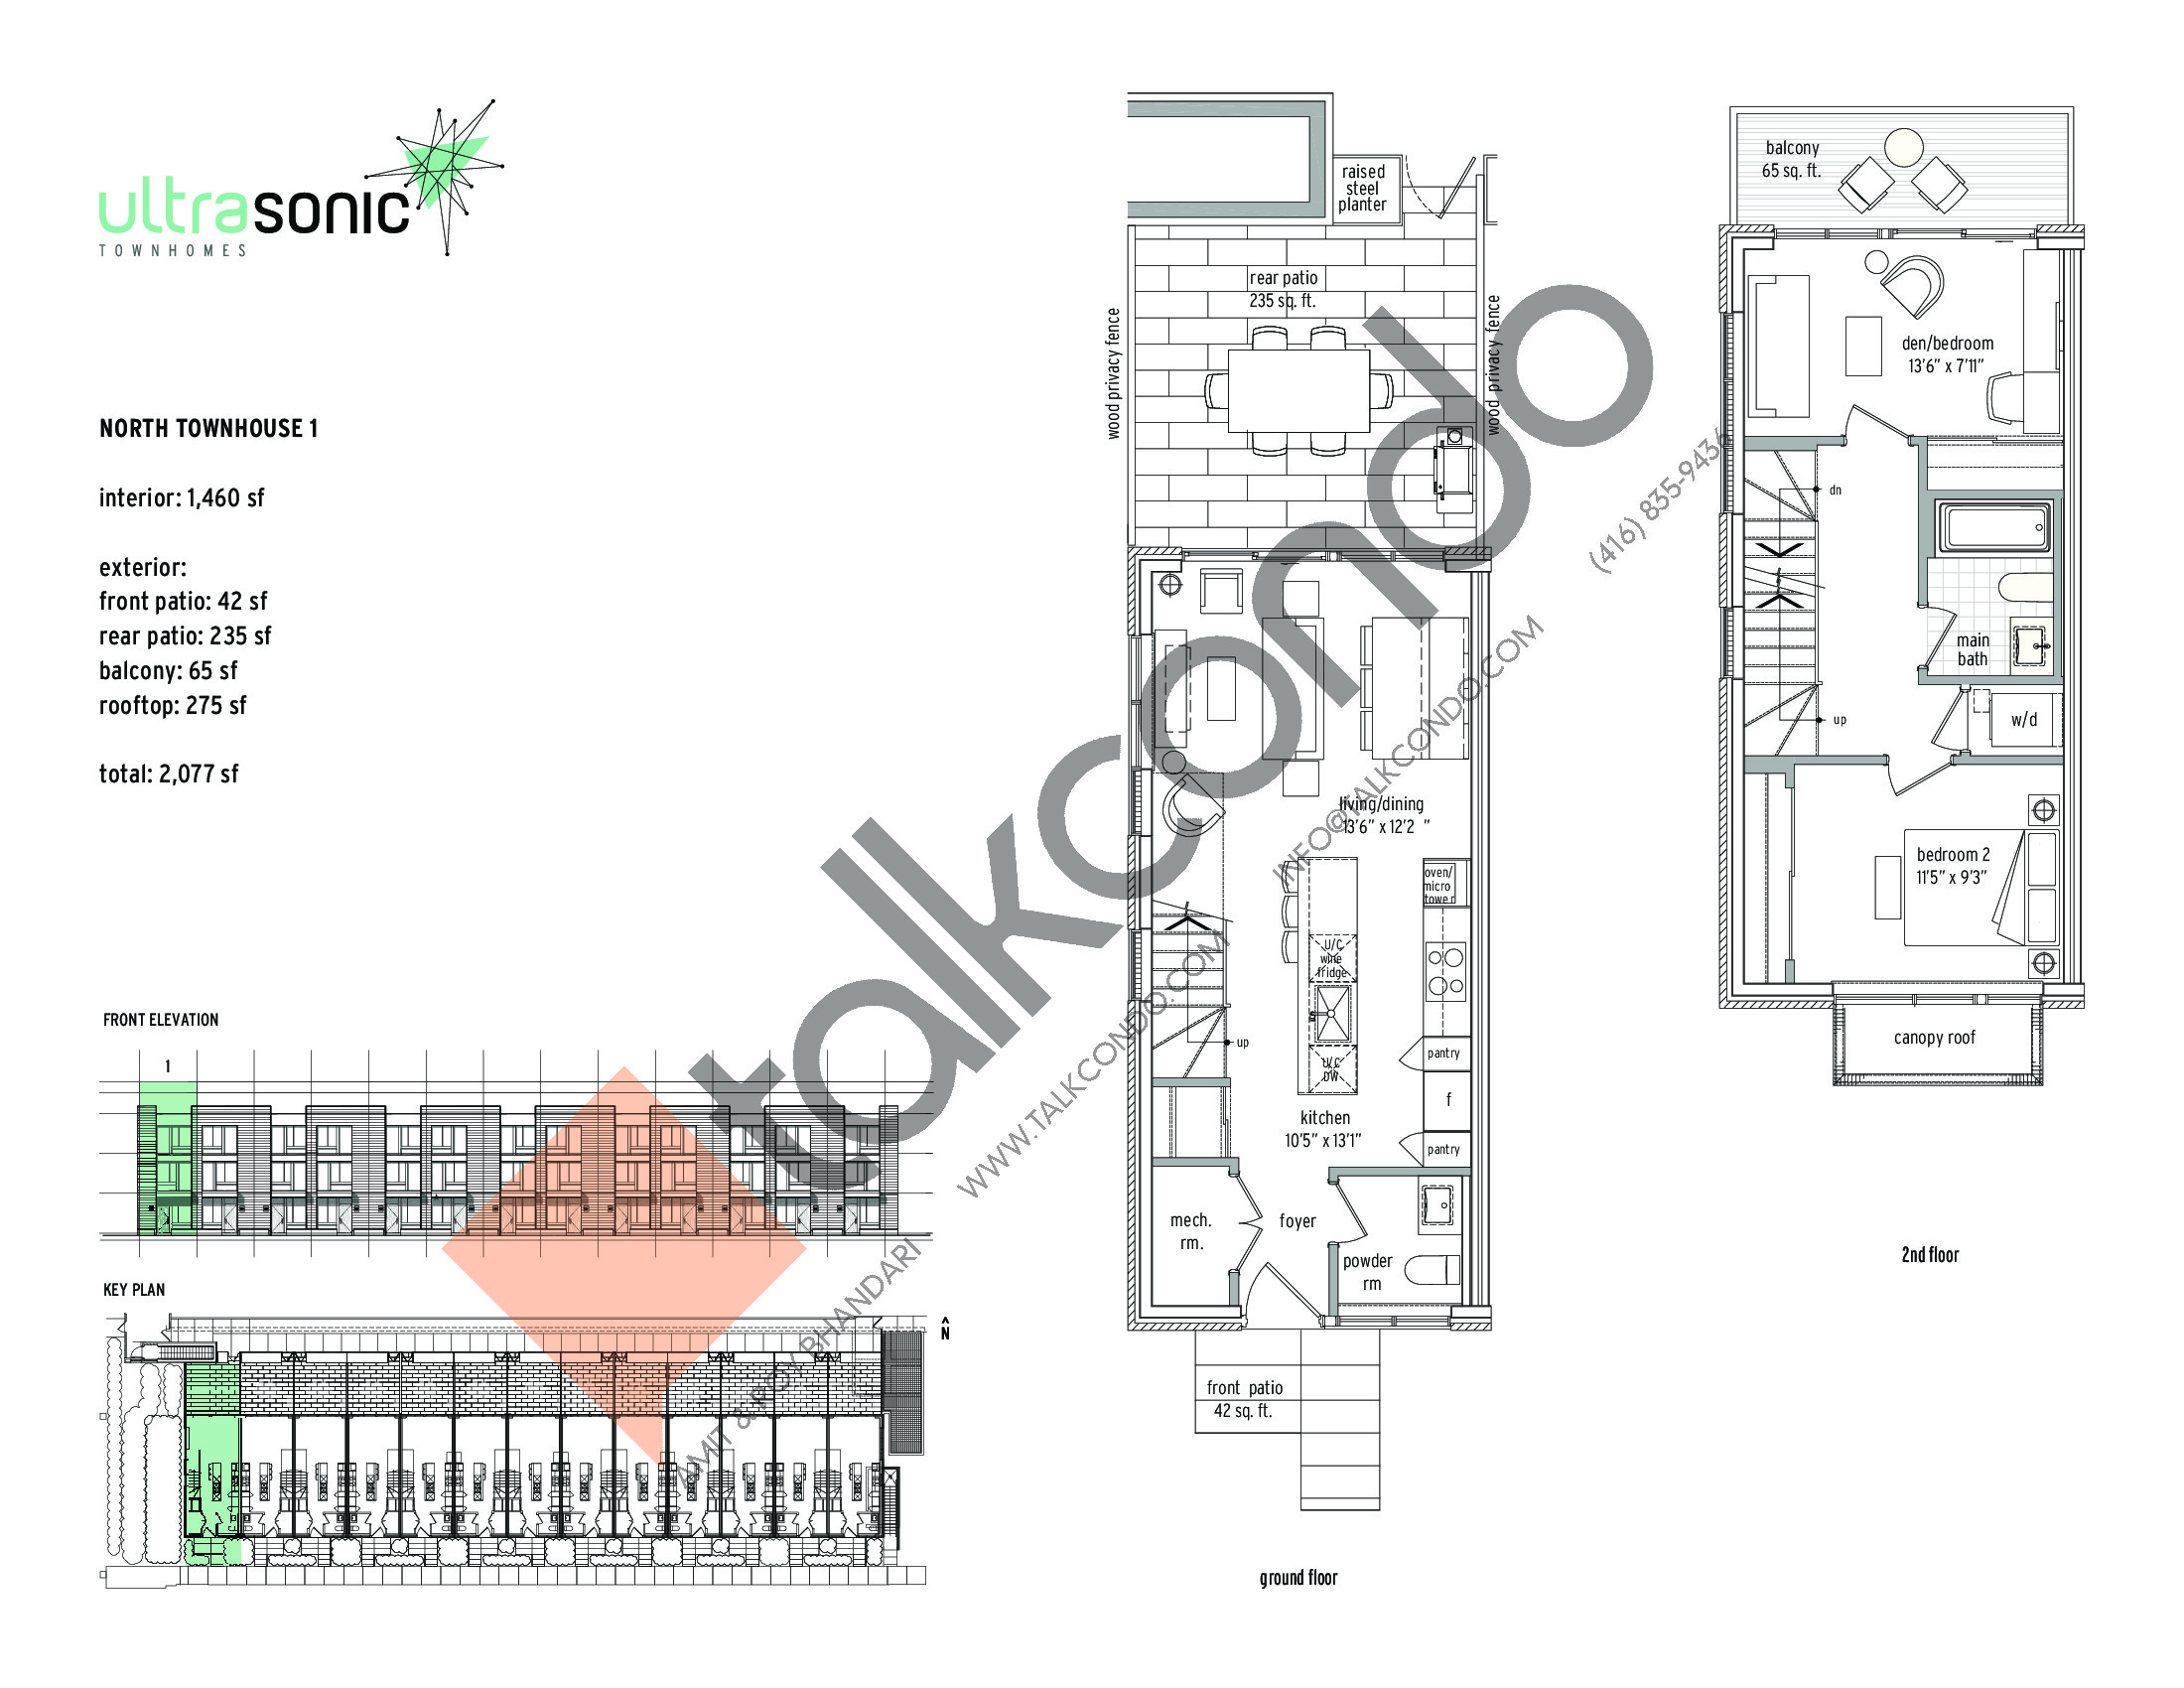 North Townhouse - 1 (1/2) Floor Plan at UltraSonic Towns - 1460 sq.ft